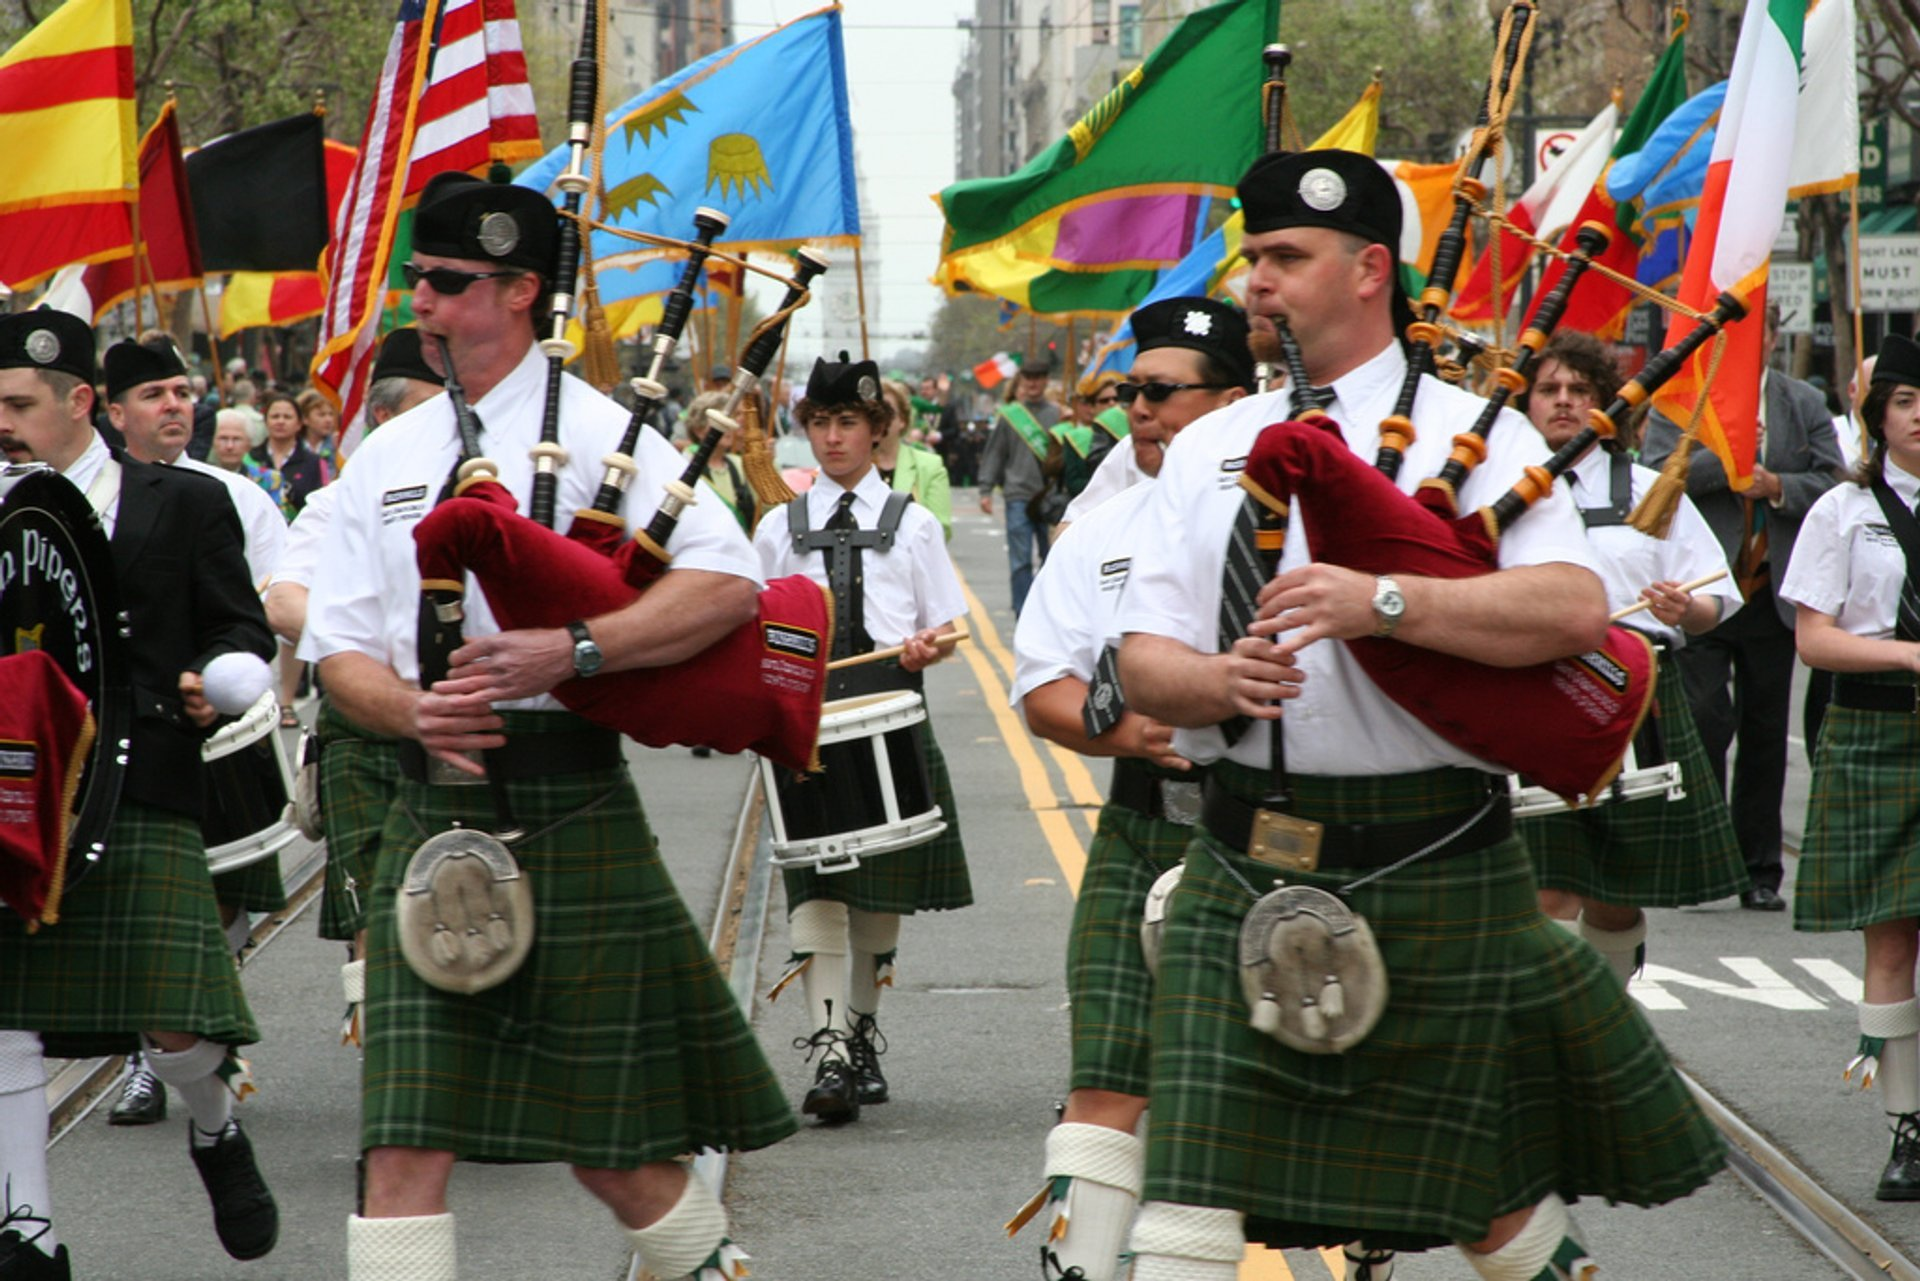 St. Patrick's Day Parade in San Francisco - Best Time